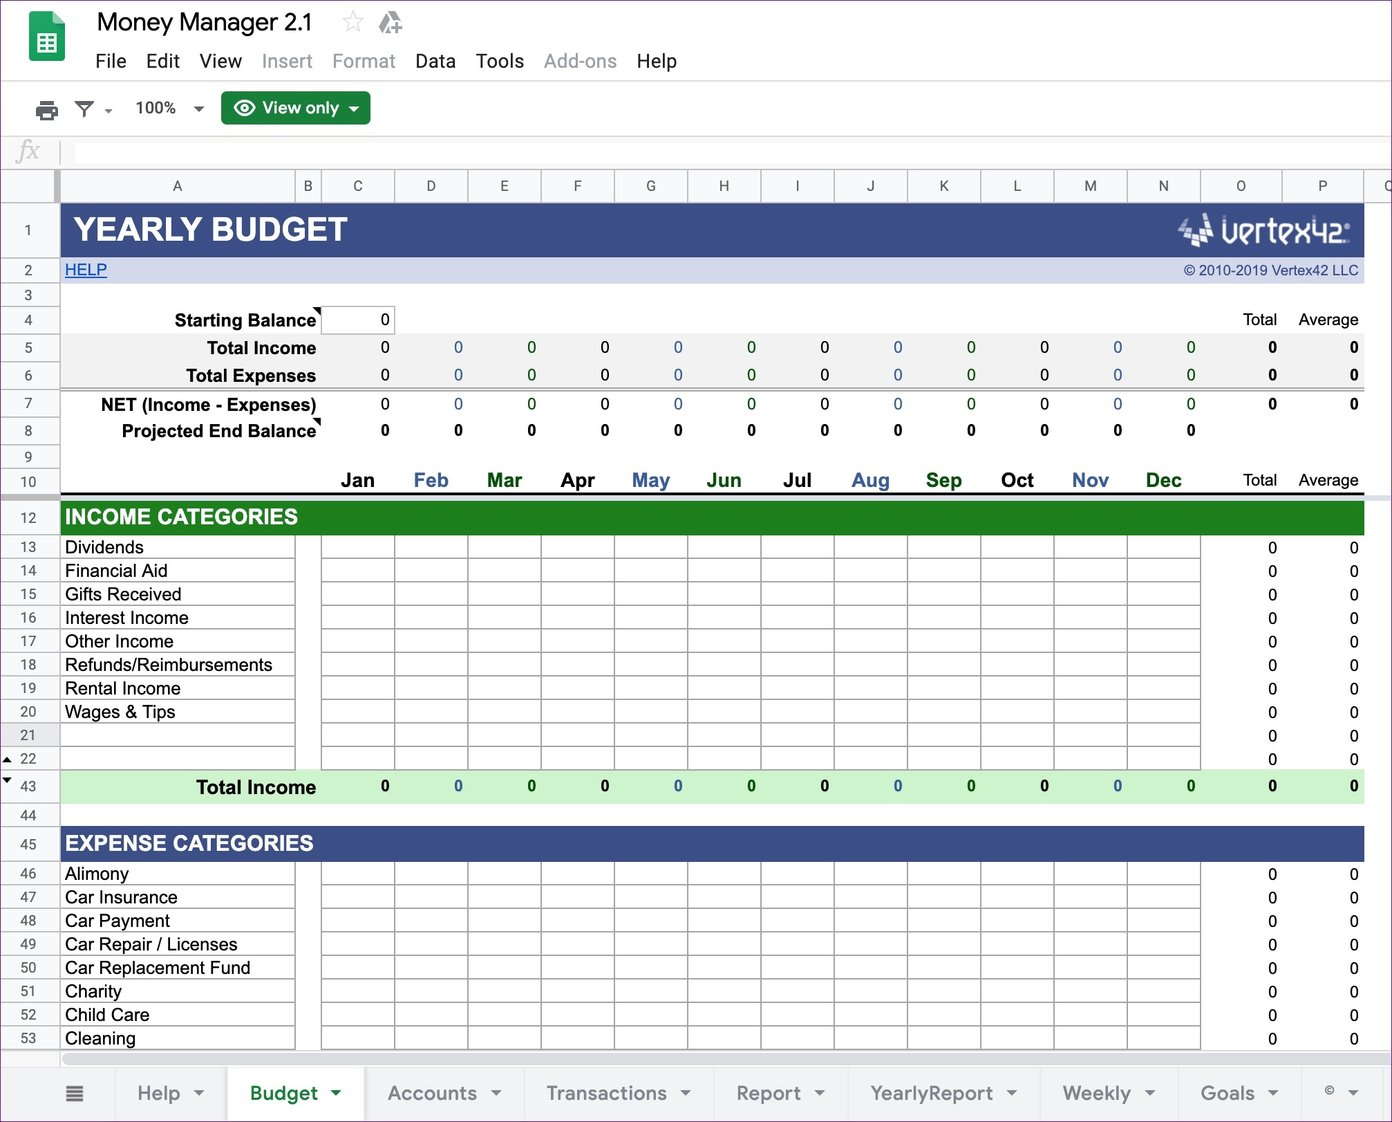 Full Size of Top Google Sheets Budget Templates For Finance Tracking Docs Planner Money Manager Free Spreadsheet